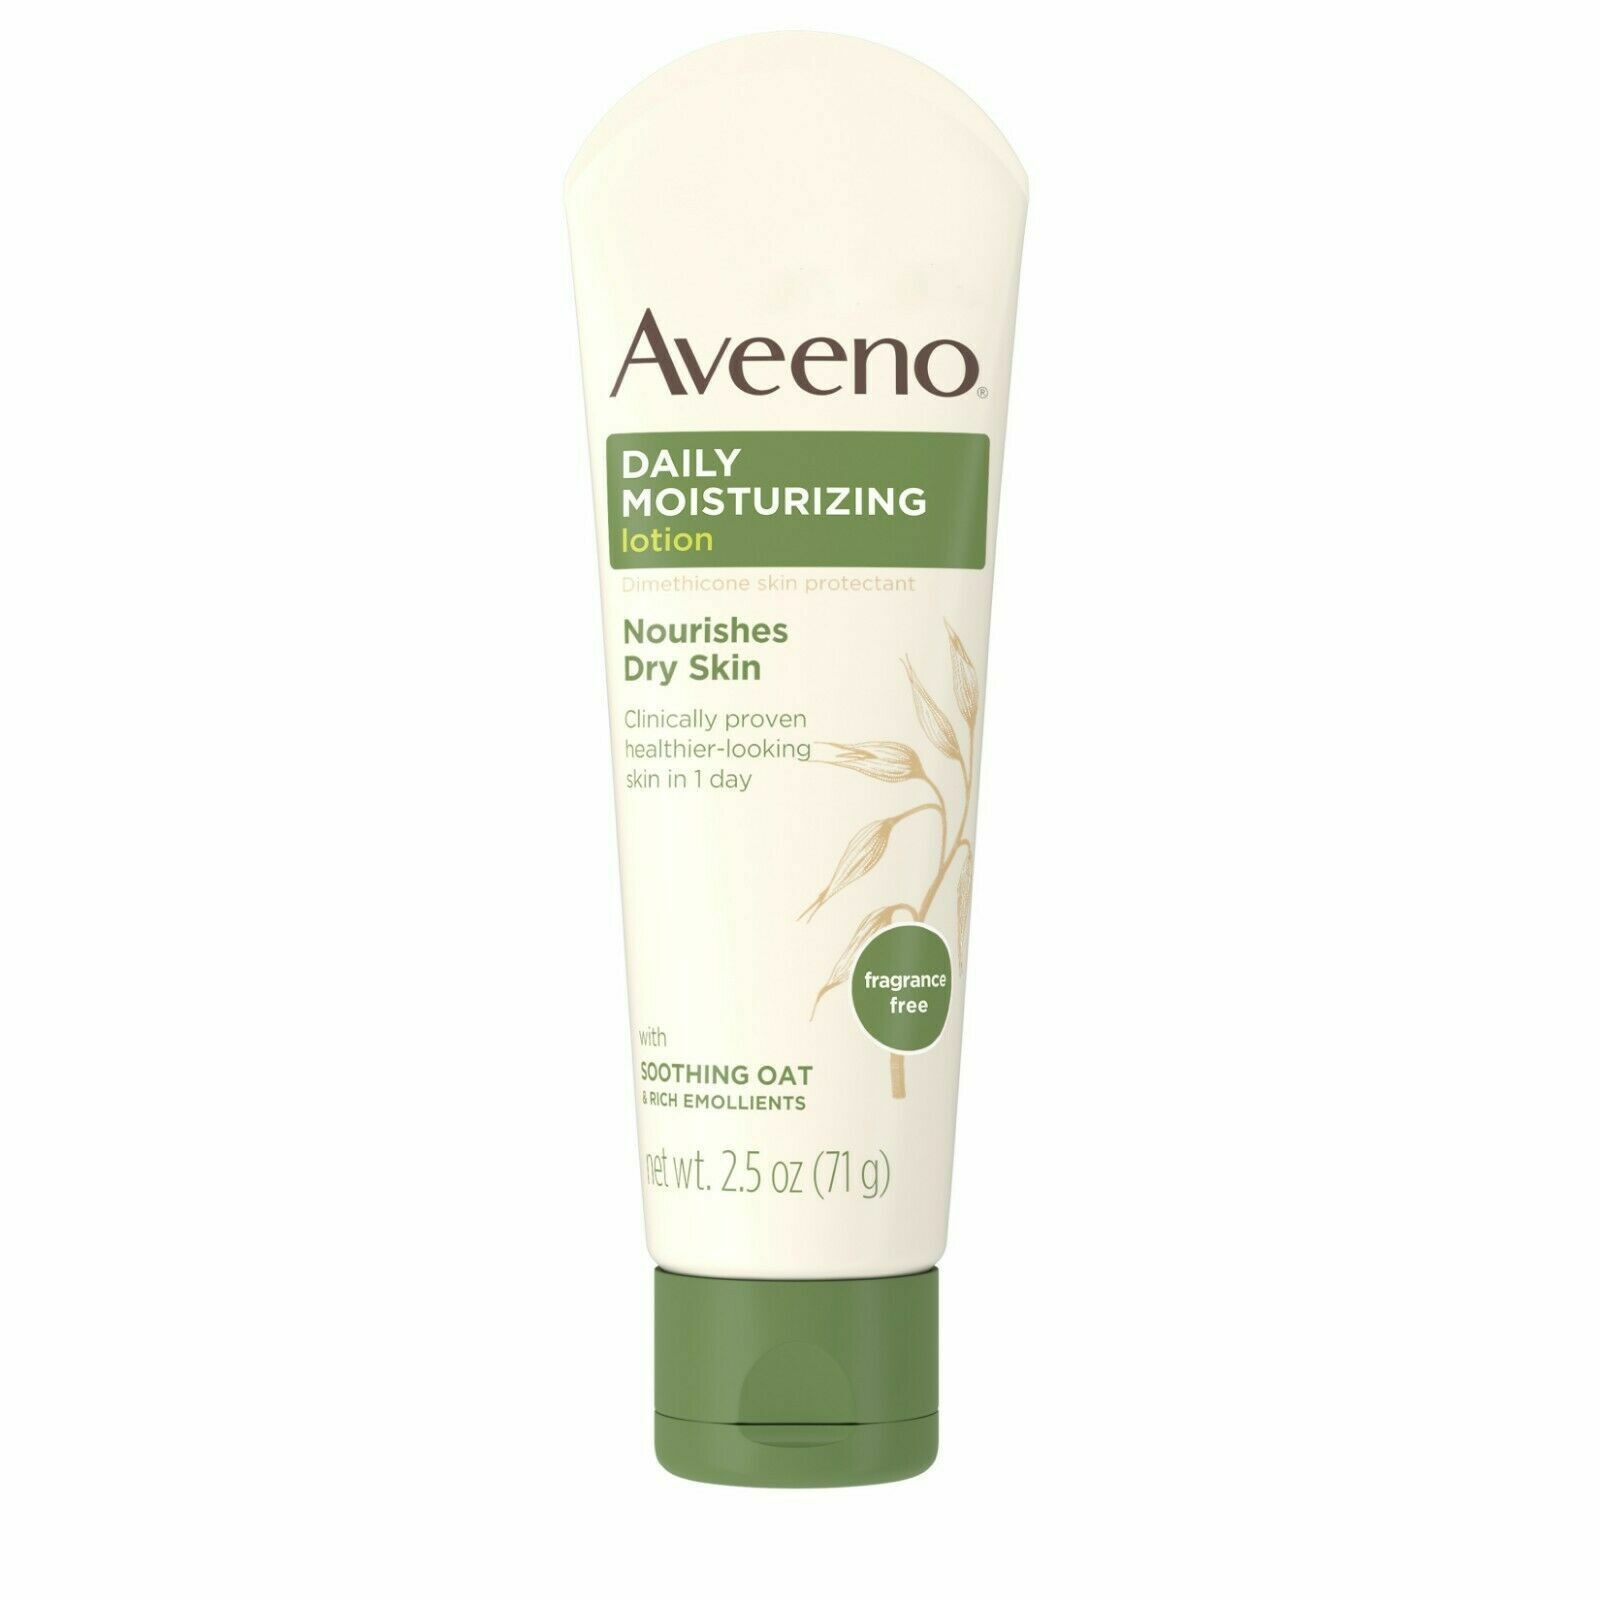 Aveeno Daily Moisturizing Lotion 2.5oz Tube